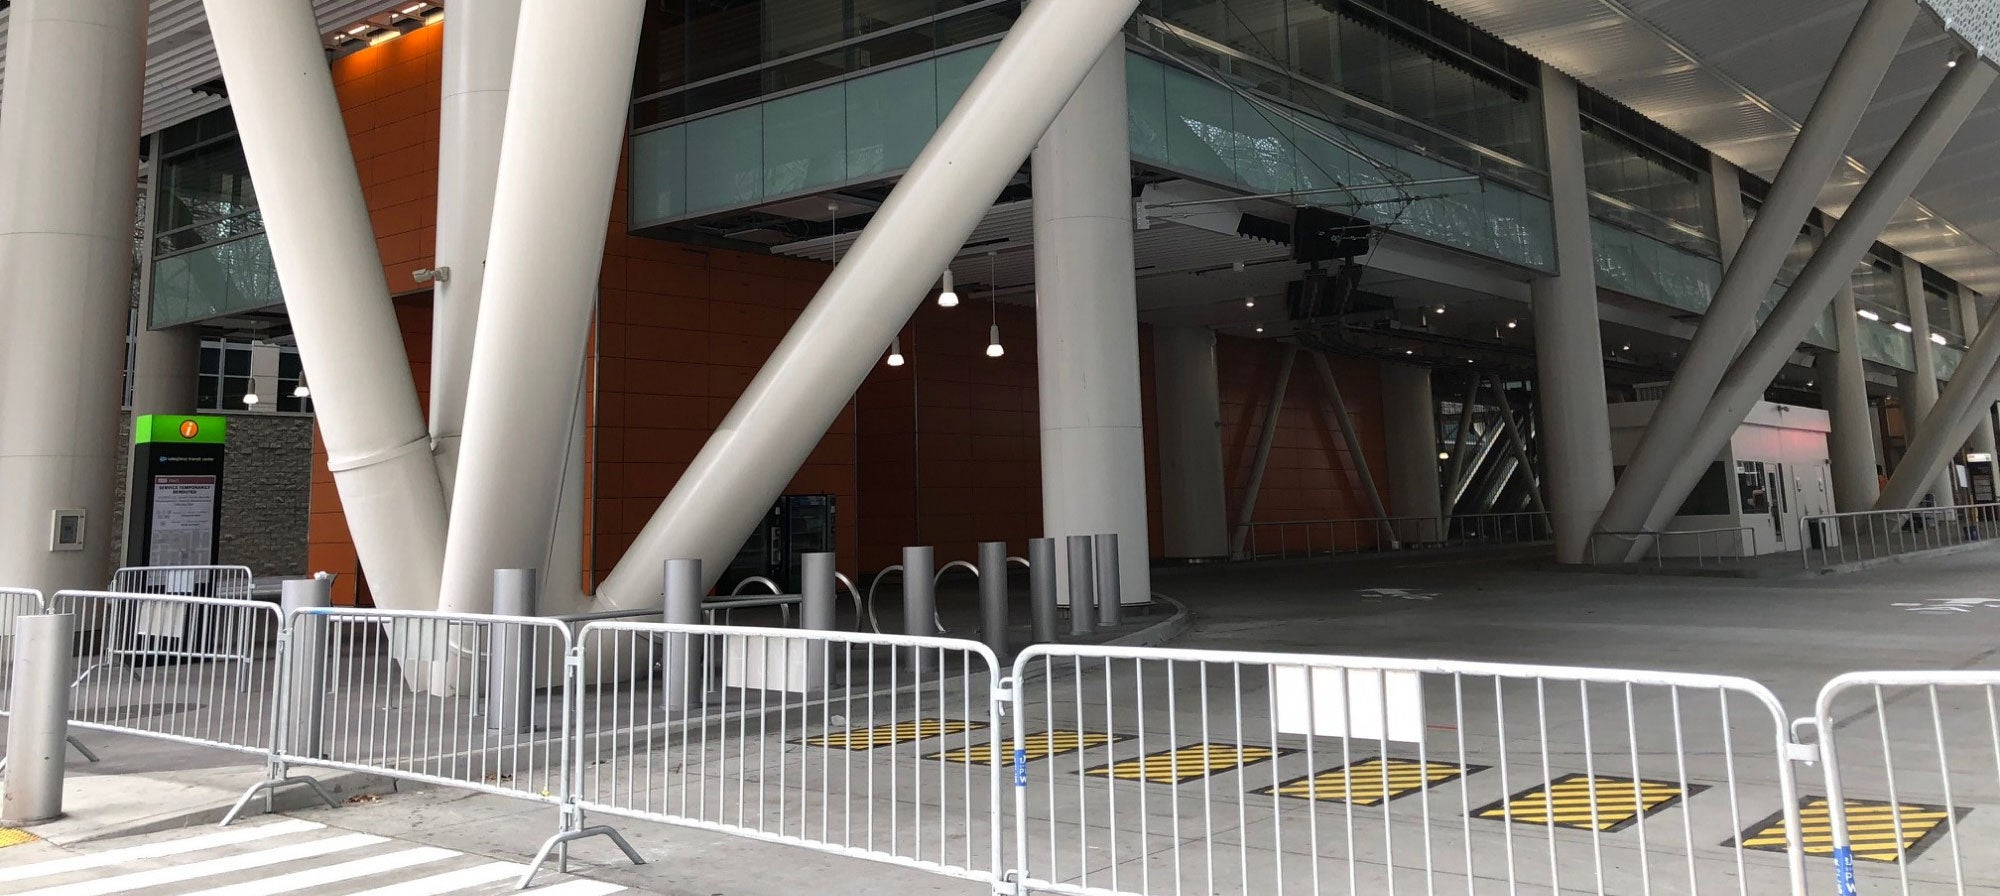 Temporary gates block entry to the Salesforce Transit Center, which has been closed since late September 2018.